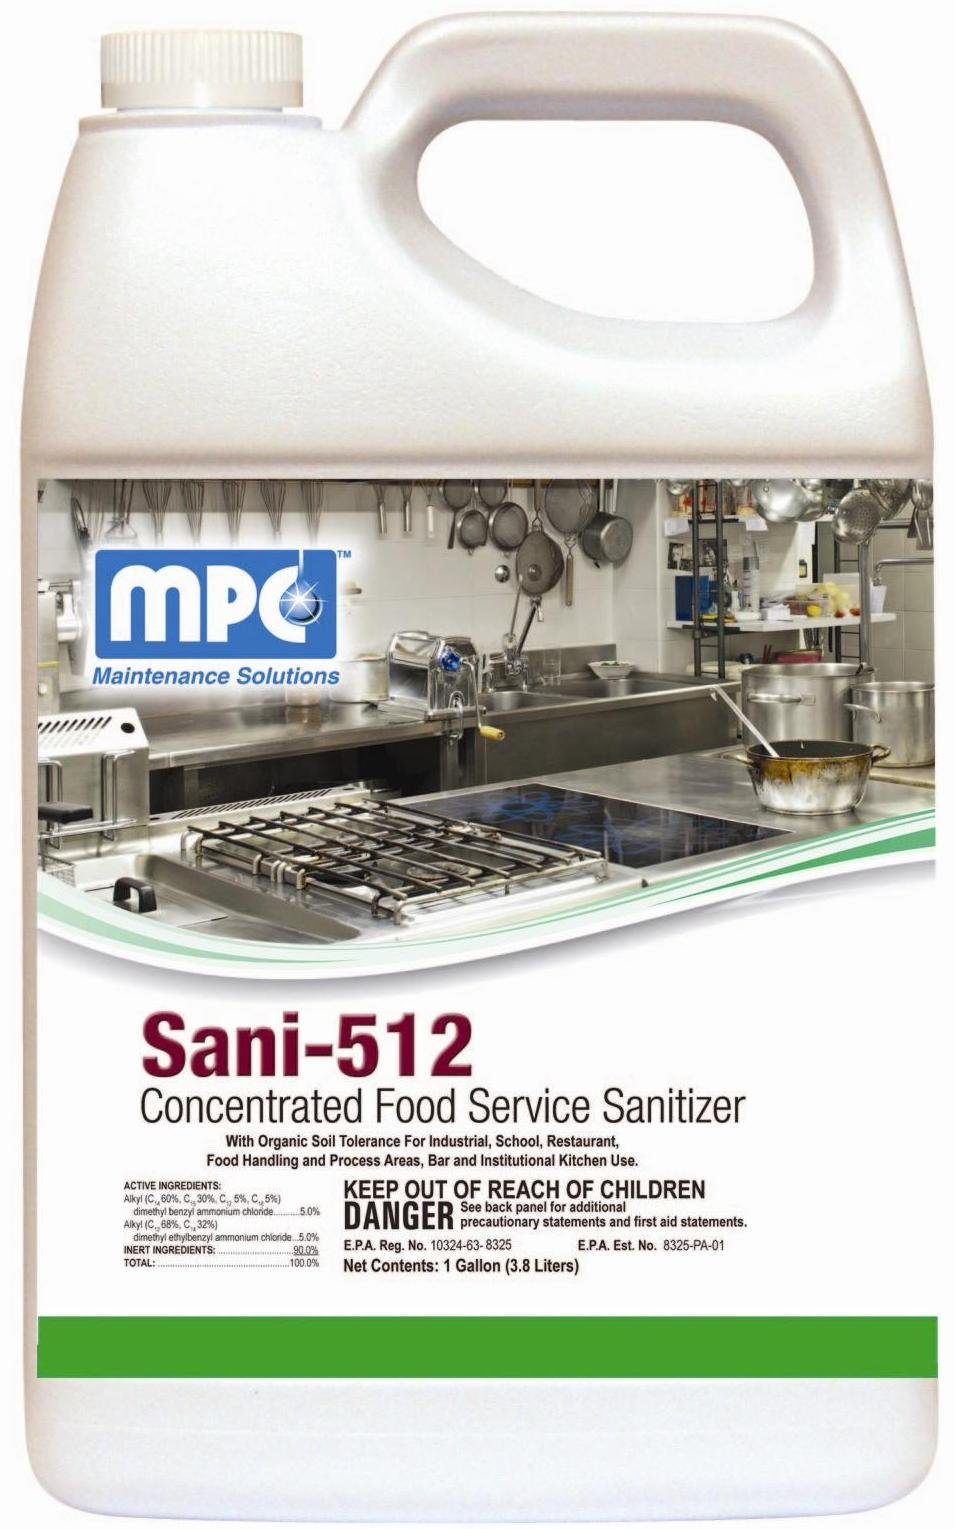 Sani 512 Sanitizer, Disinfectant & Deodorant - 4 Gallons/Case by MPC